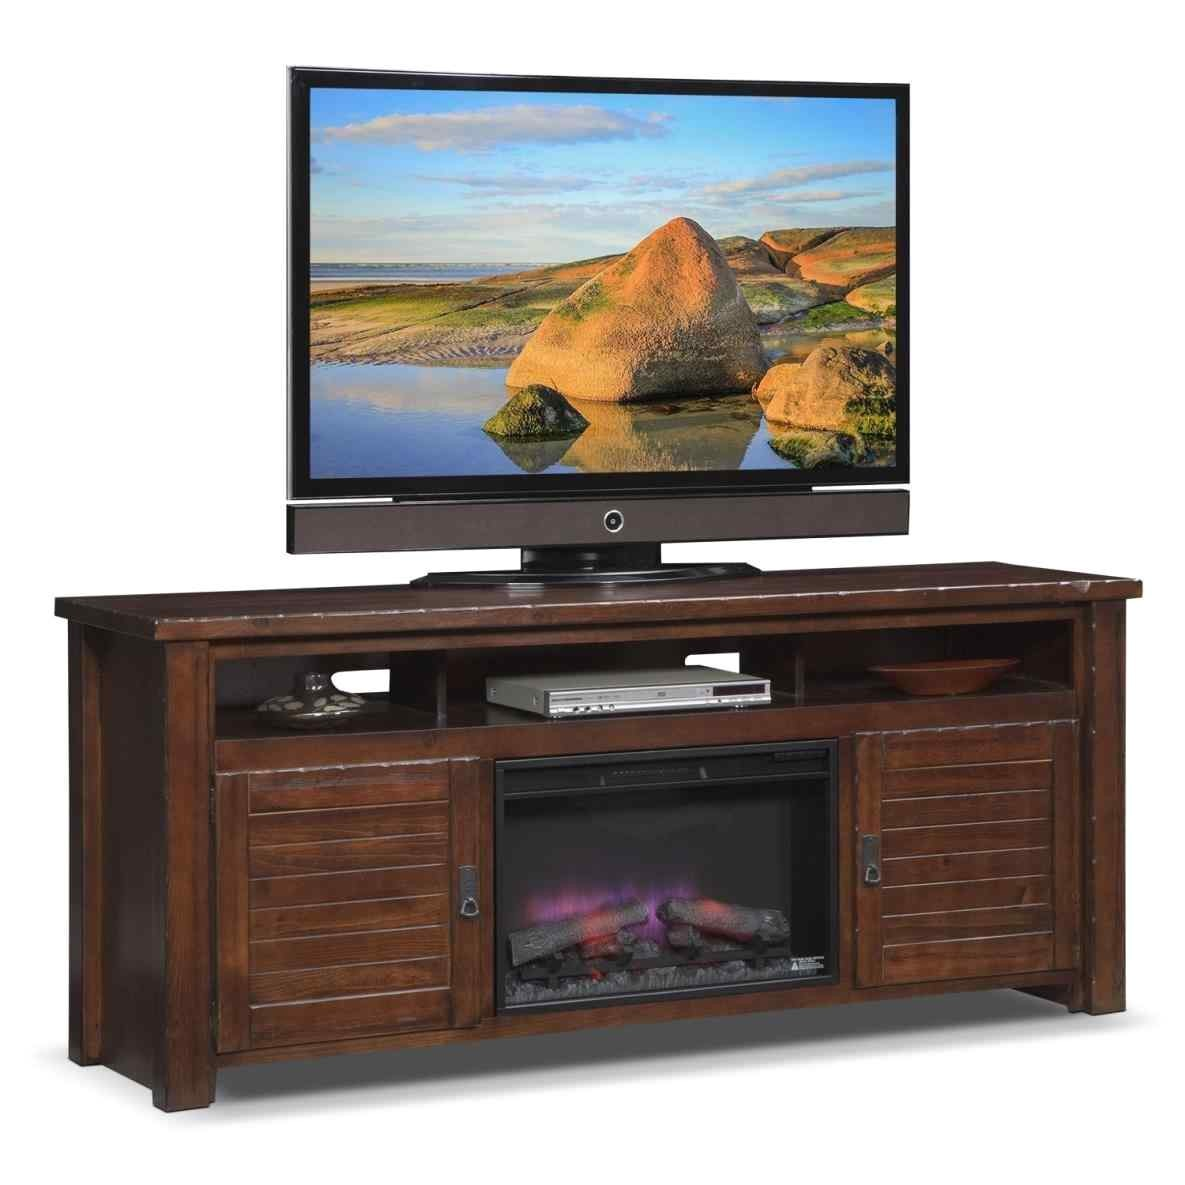 american furniture tv stands black large tv stand with electric fireplace unit by furniture american warehouse furnitures furniture american furniture tv stands jpg